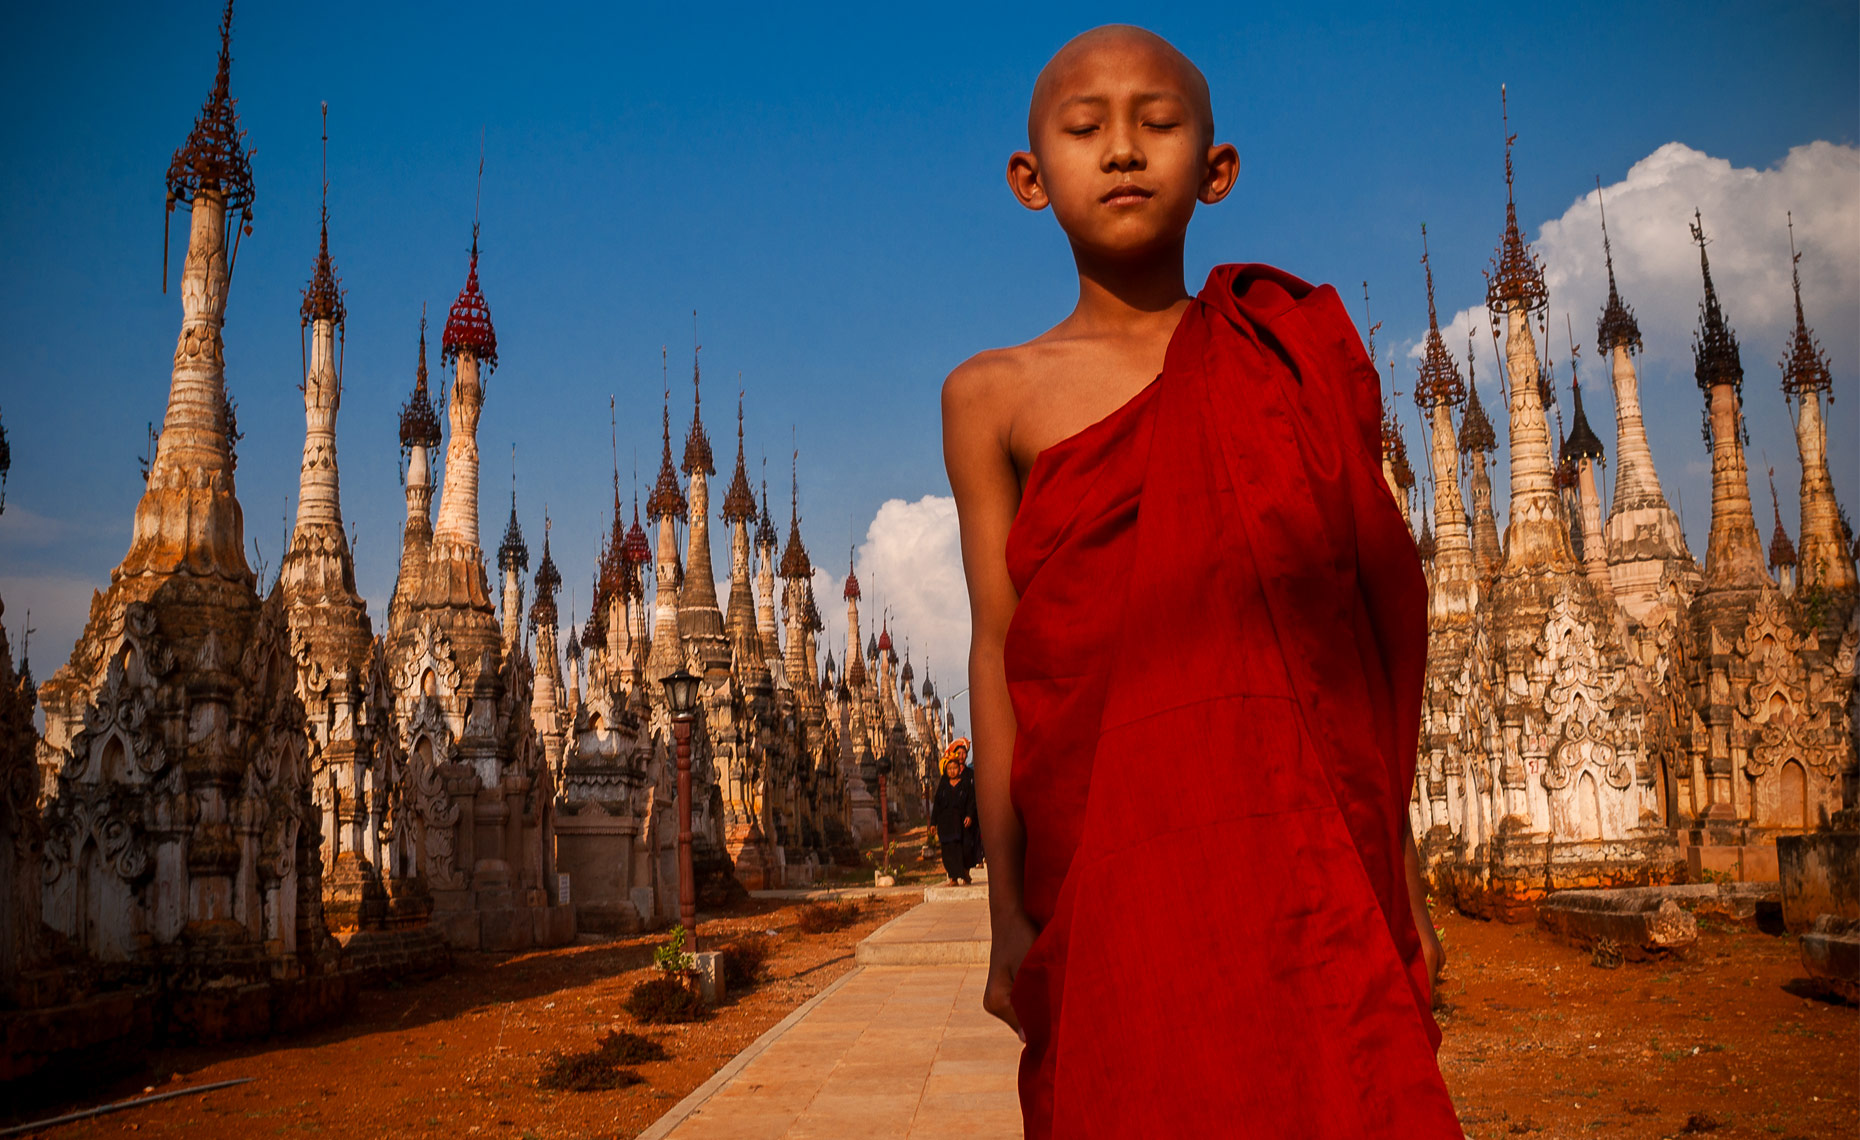 young-buddhist-monk-in-kekku-burma-myanmar